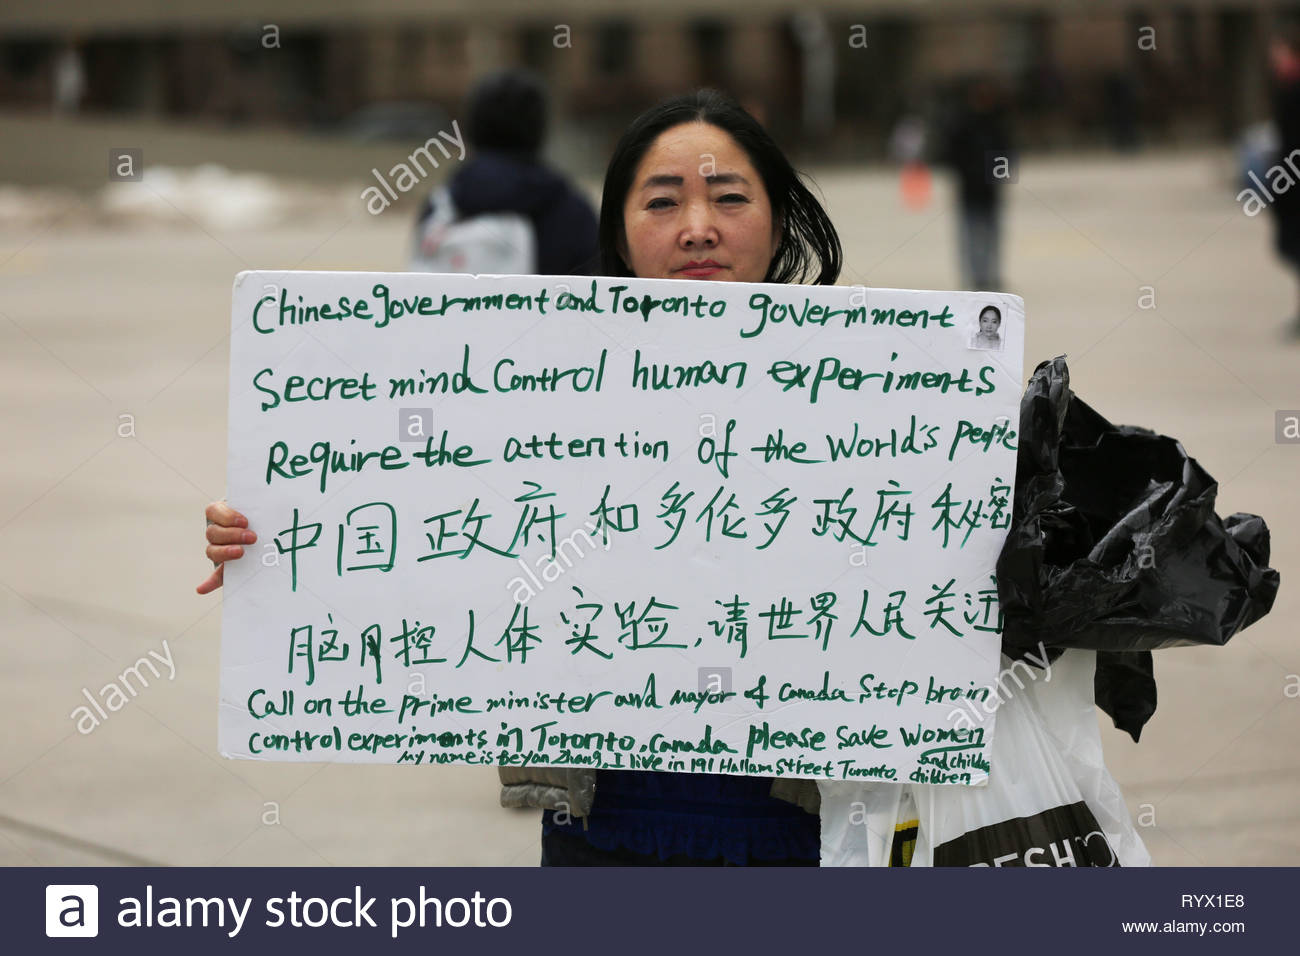 Chinese woman protesting against the Chinese government and the Canadian government's alleged mind control experiments in Toronto, Ontario, Canada. - Stock Image